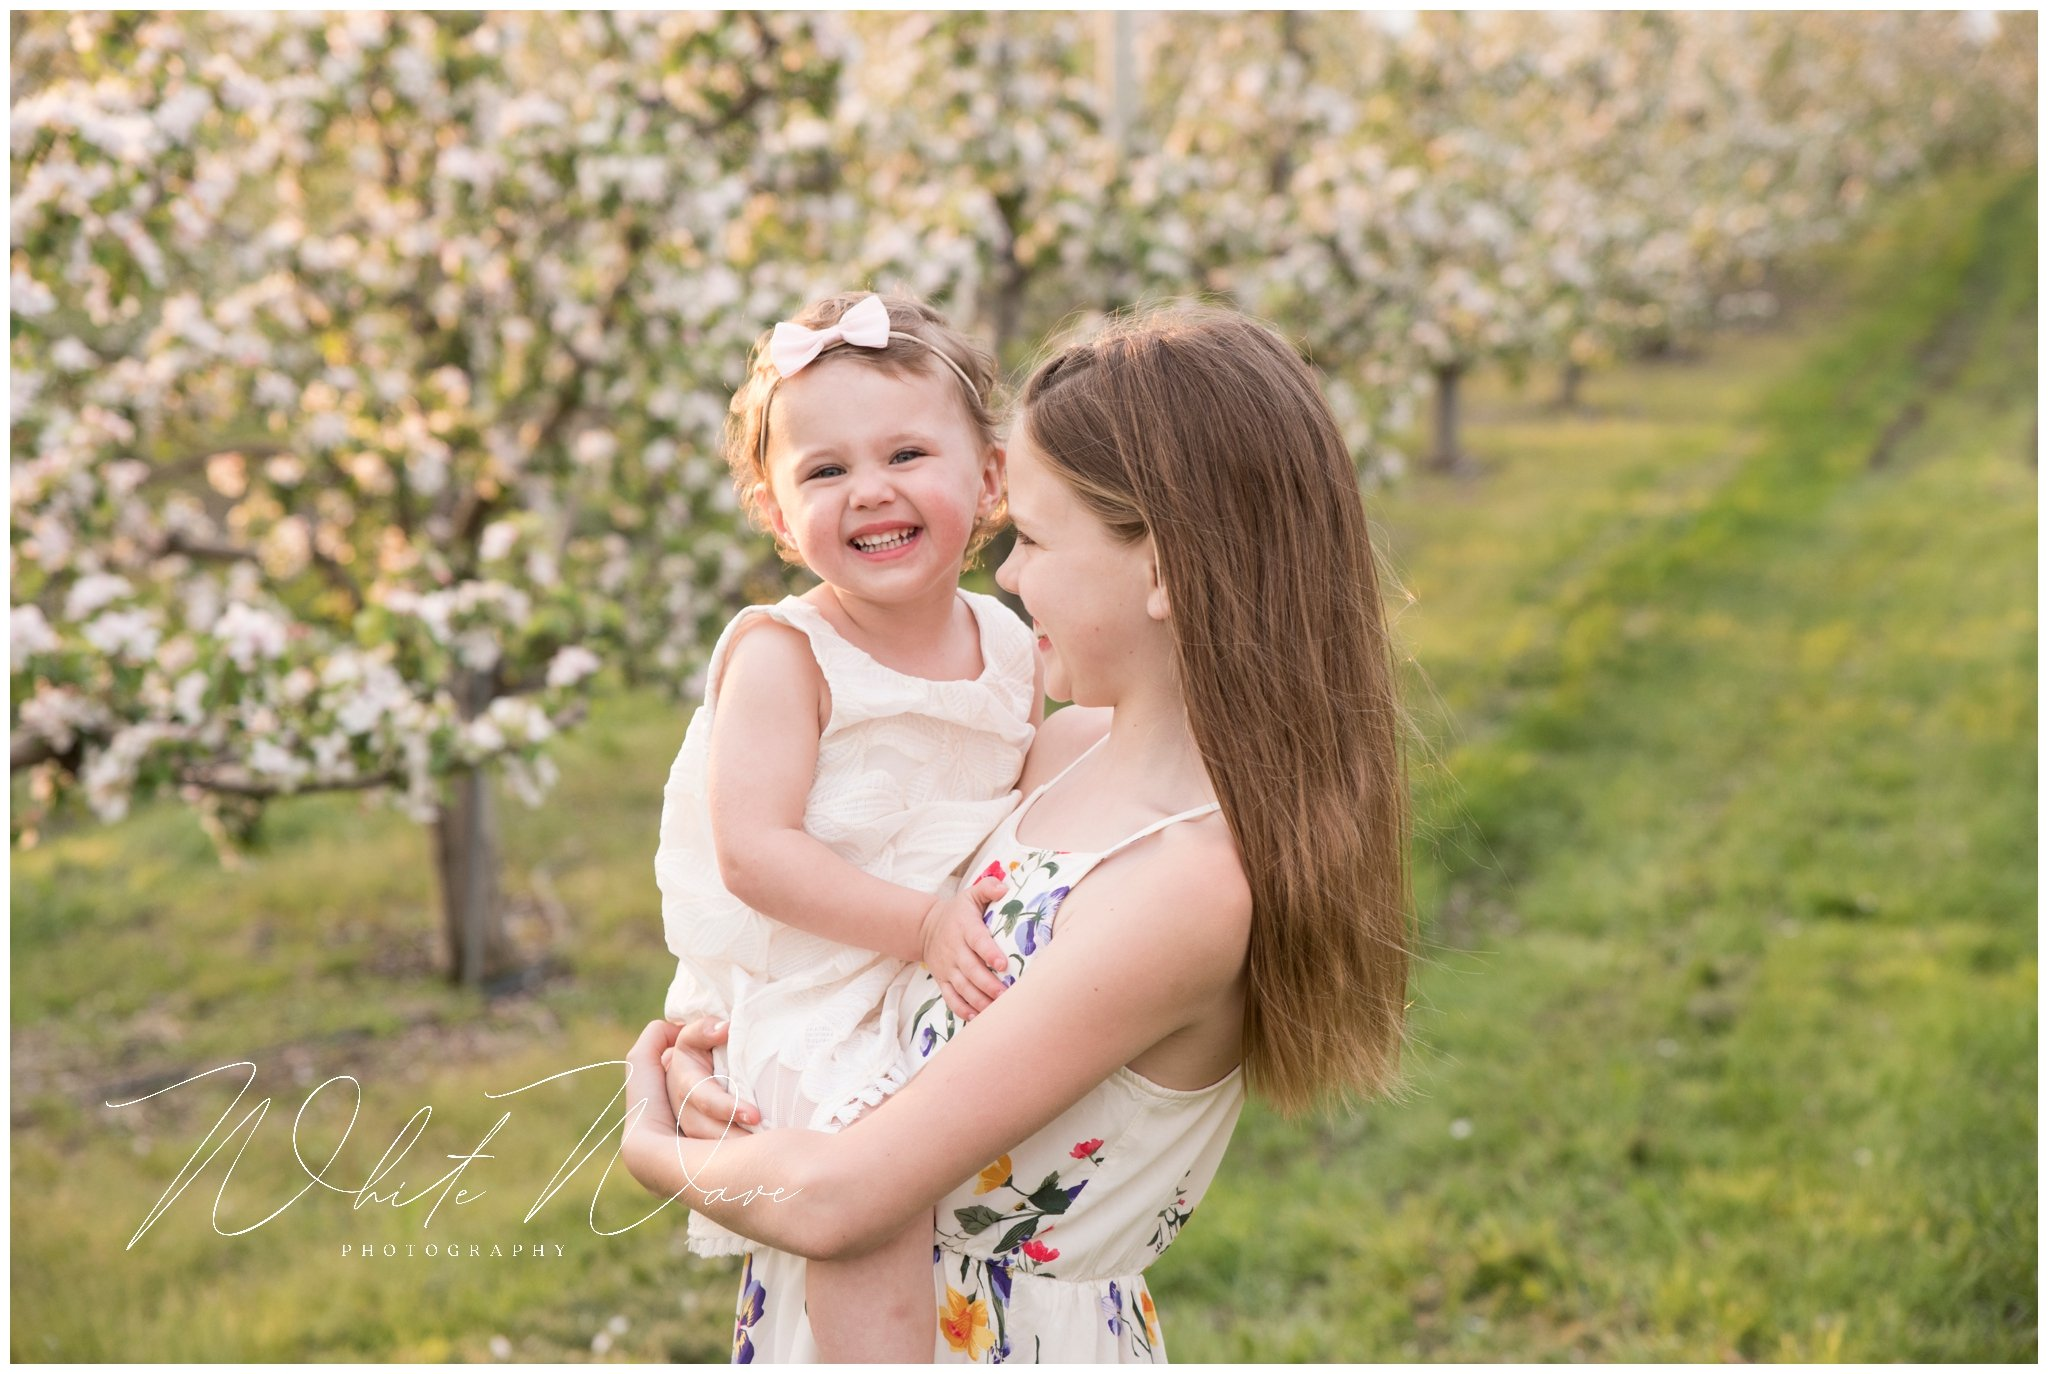 sweet sisters during this outdoor spring family portrait session